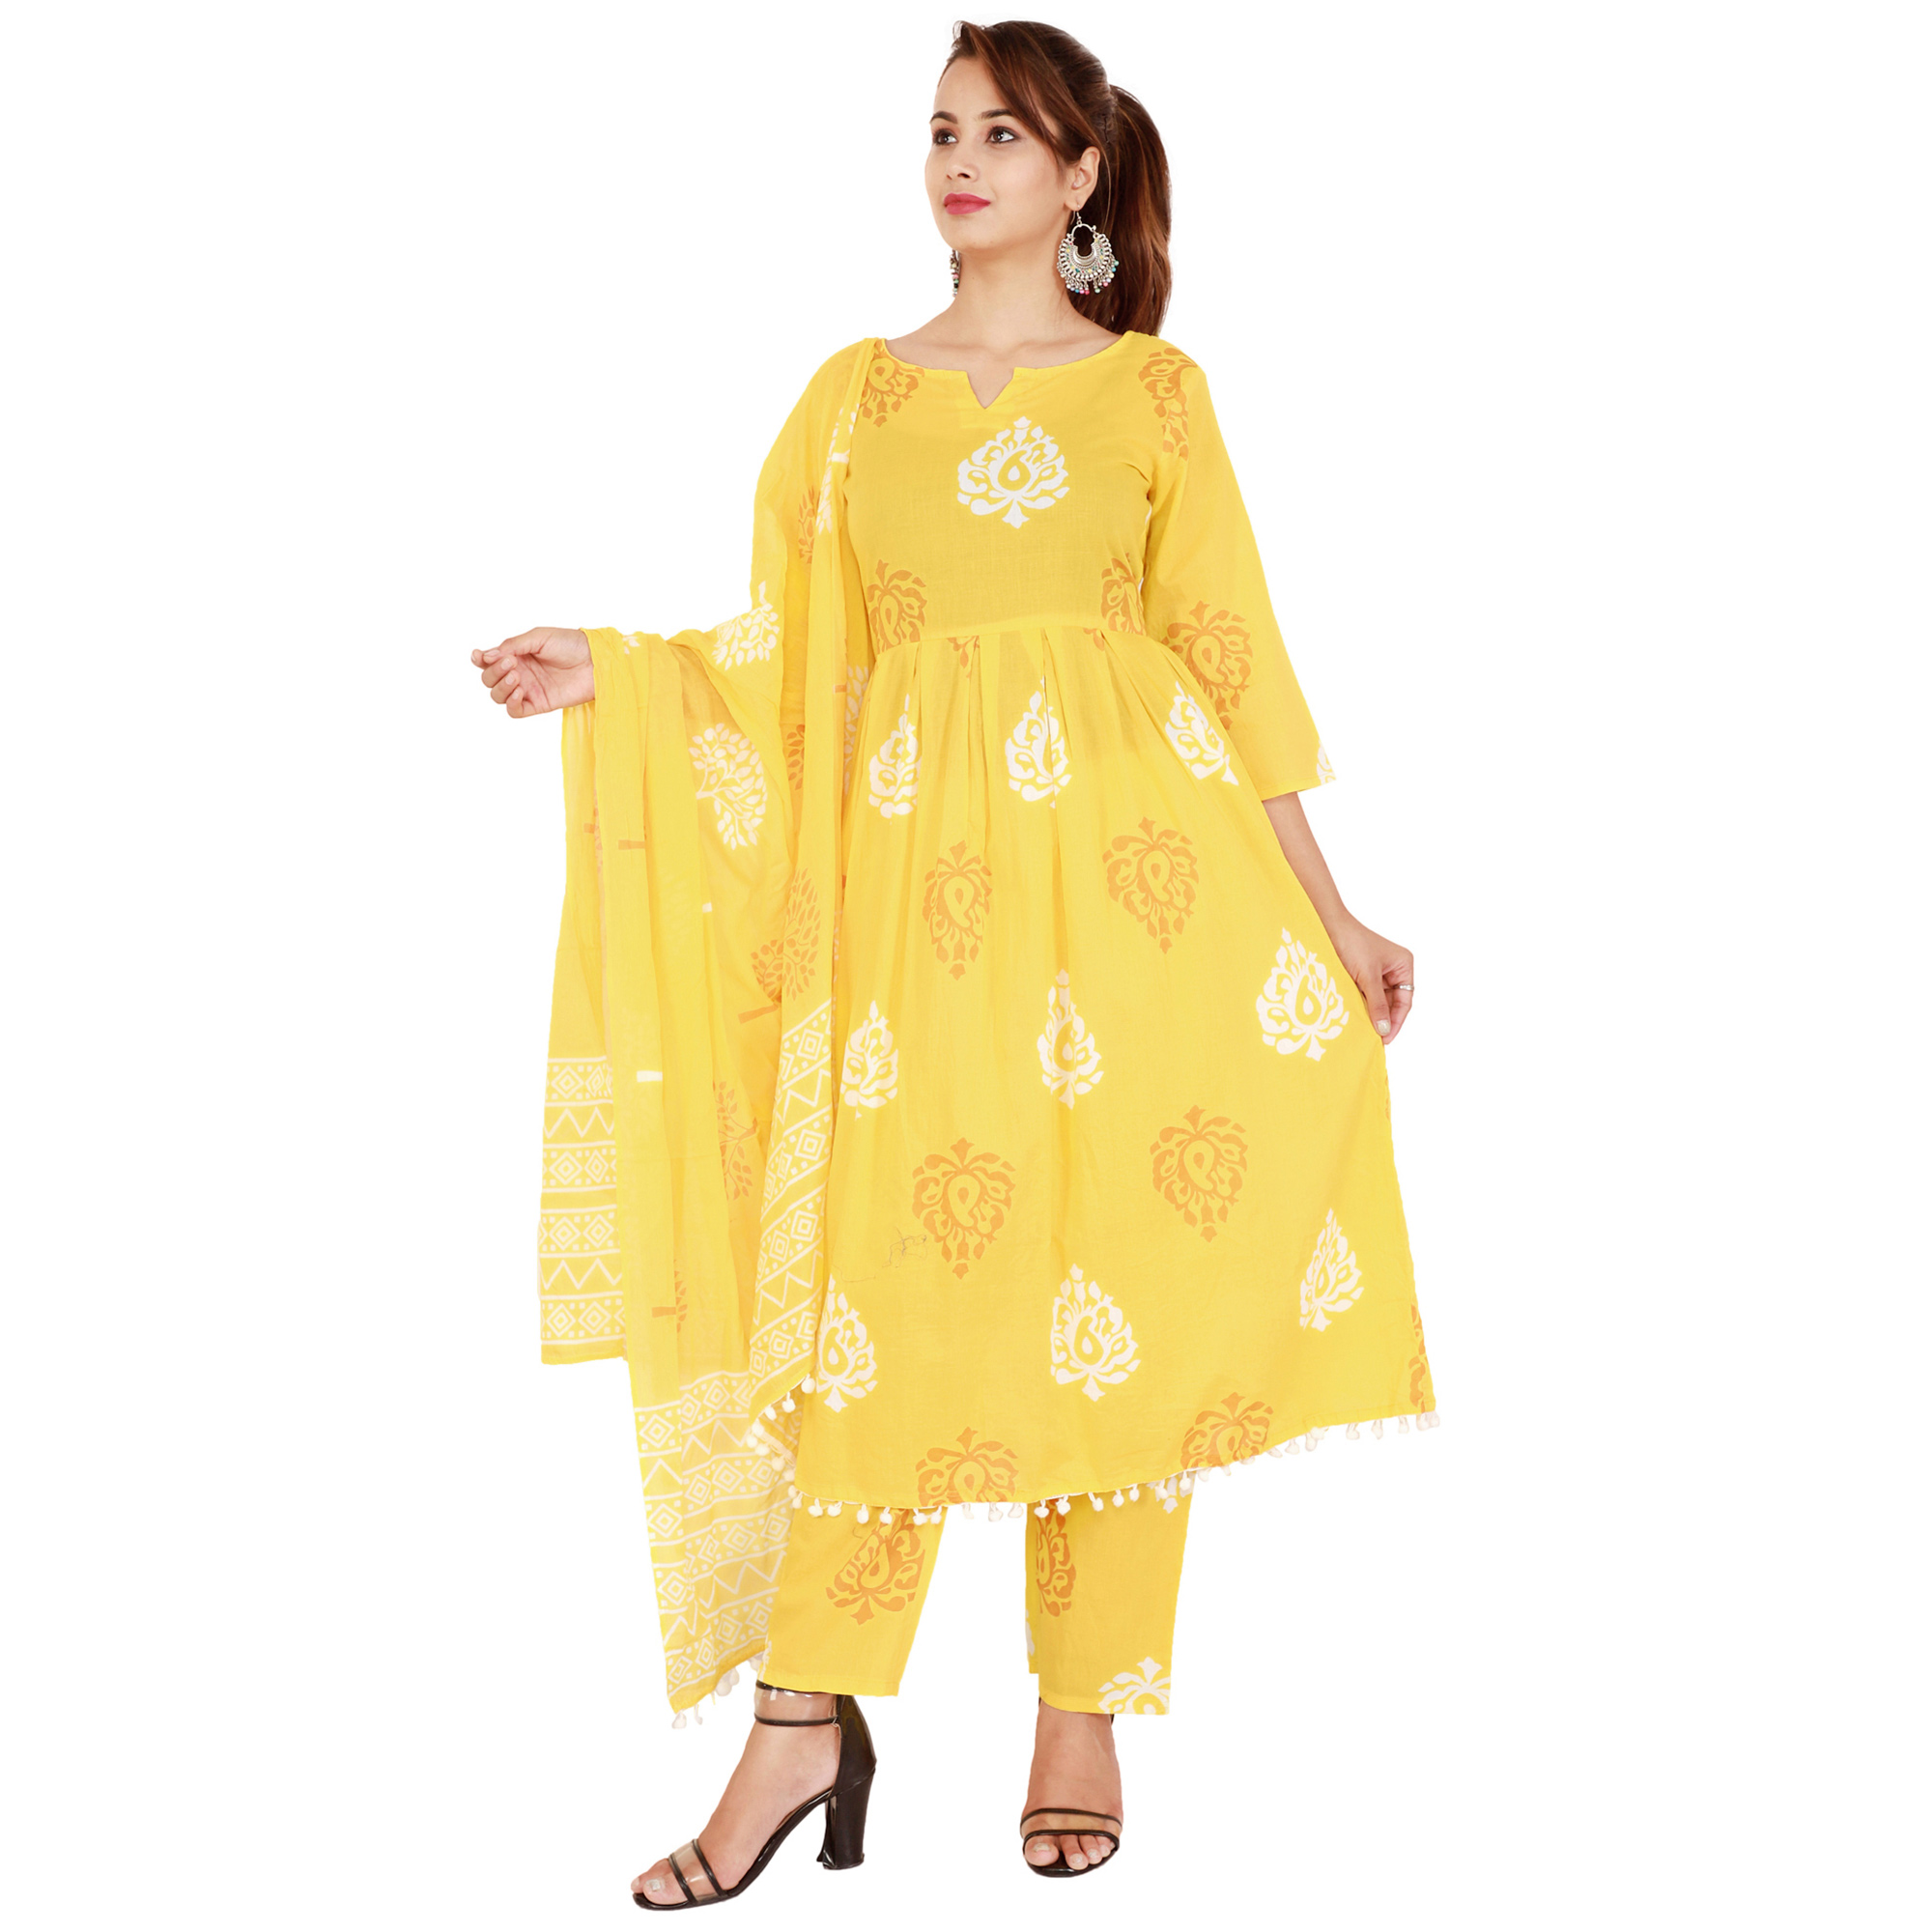 Preferable Yellow Colored Casual Printed Cotton Kurti-Bottom Set With Dupatta